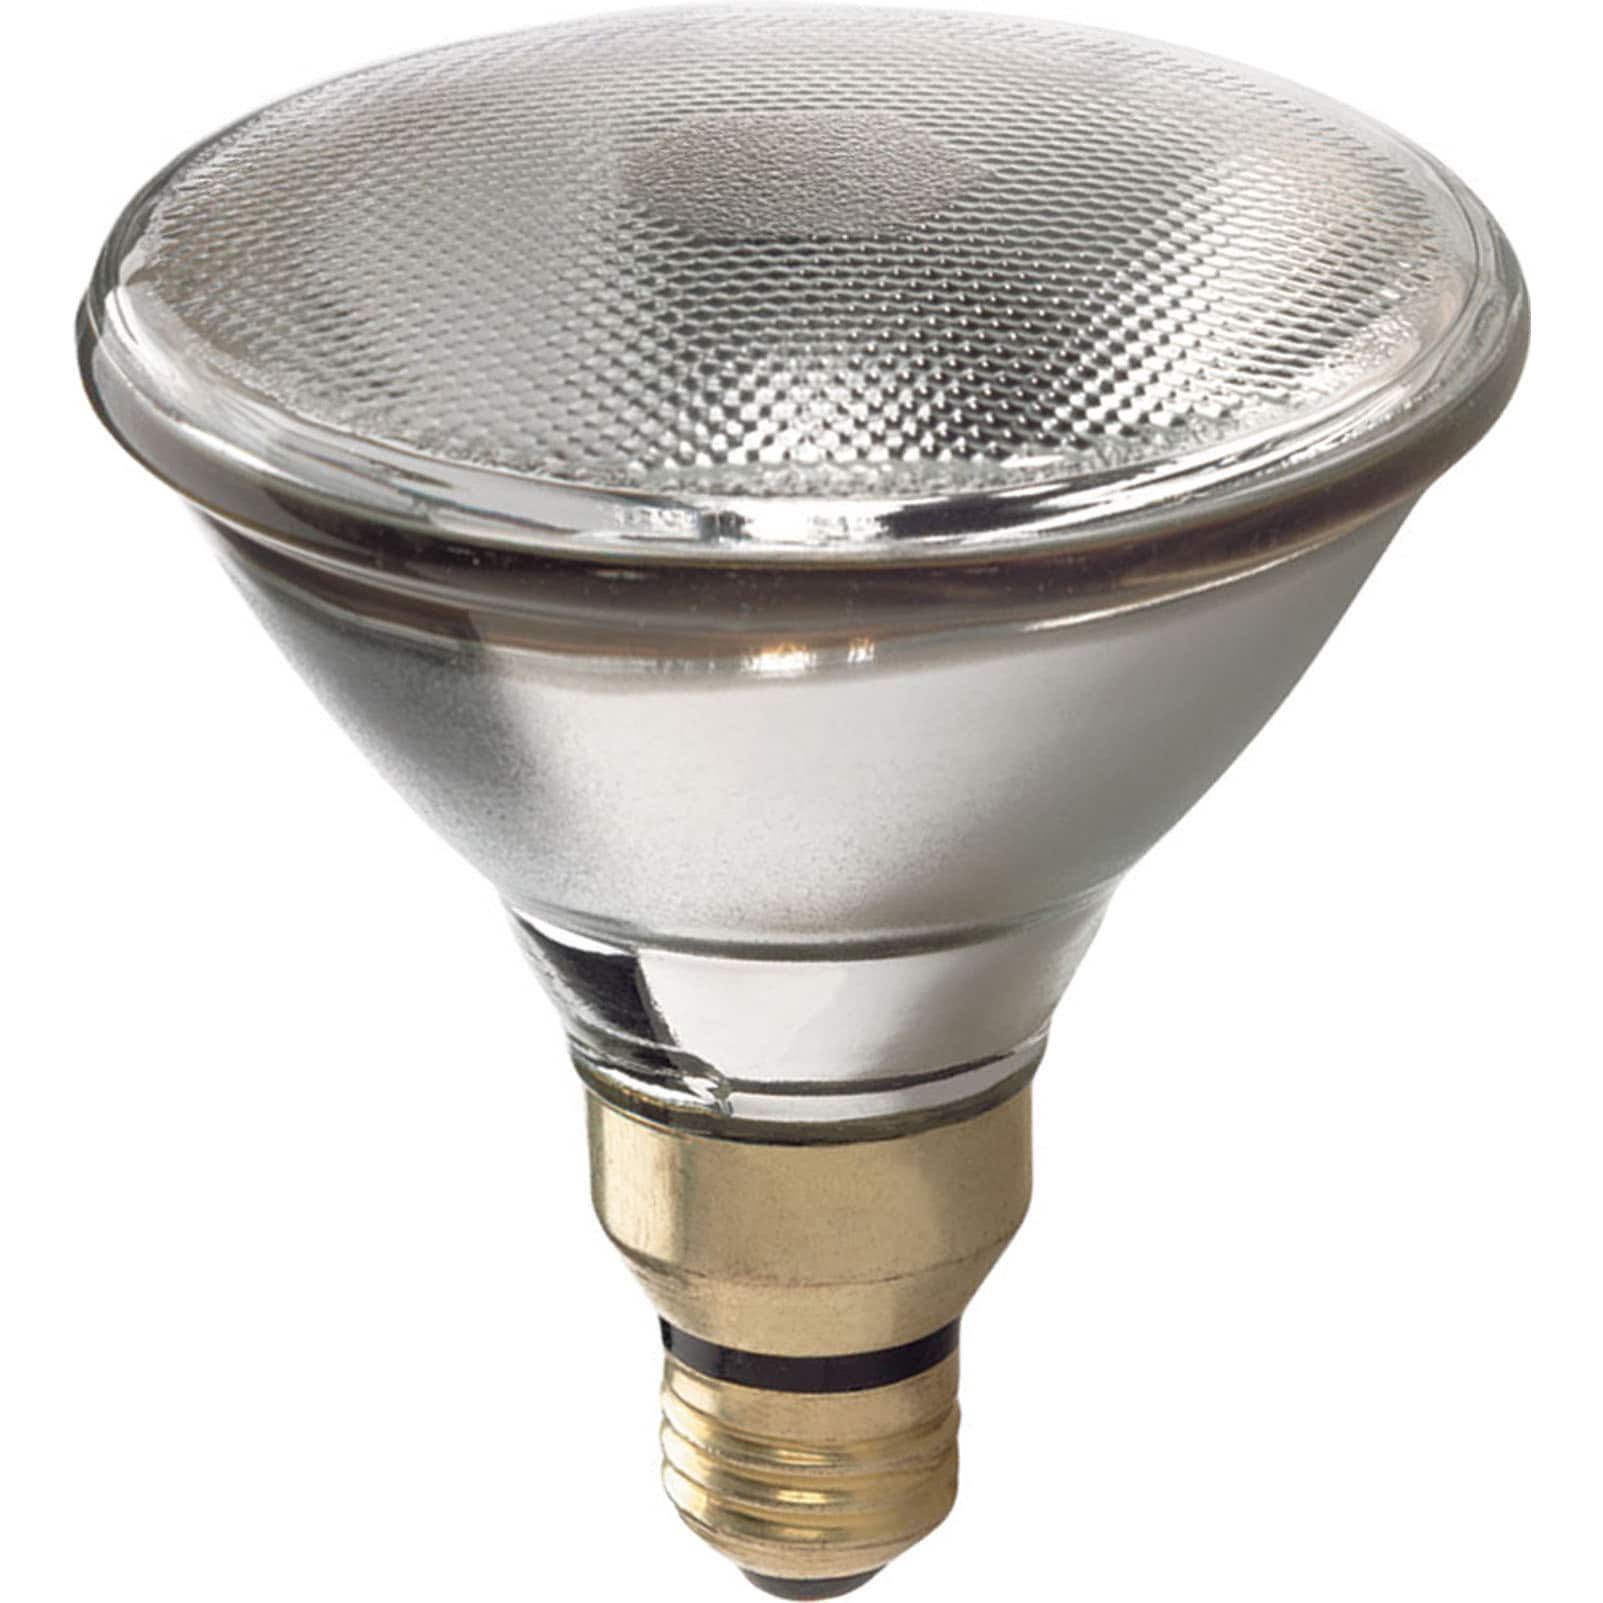 Halogen Spotlight Bulbs Ge Halogen Light Bulb 90 Watts 1790 Lumens Spotlight Par38 Medium Base E26 White 1 Pk